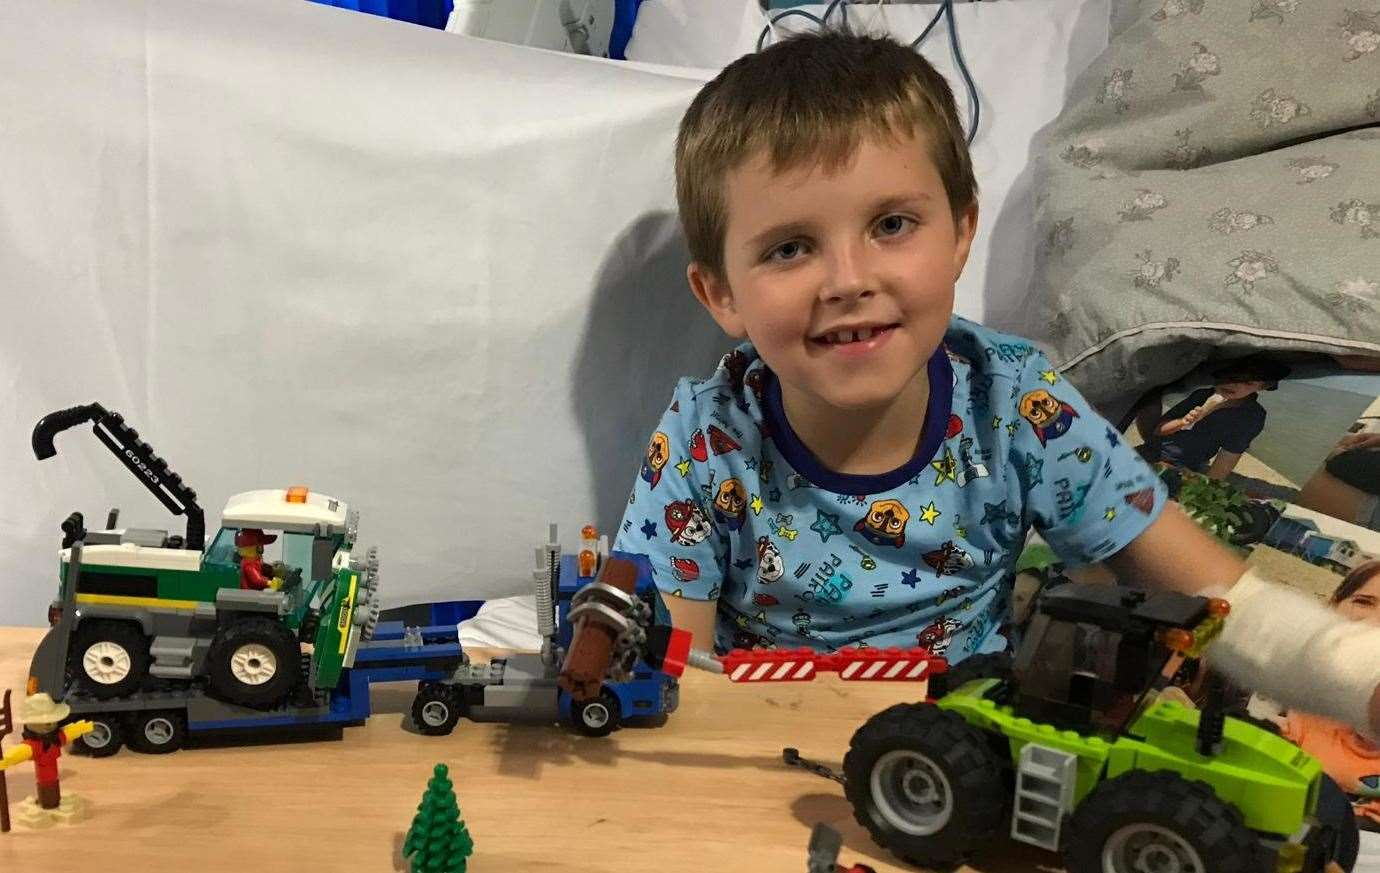 Joe Ward-Bates with Lego sets he proudly built while being treated at King's College Hospital